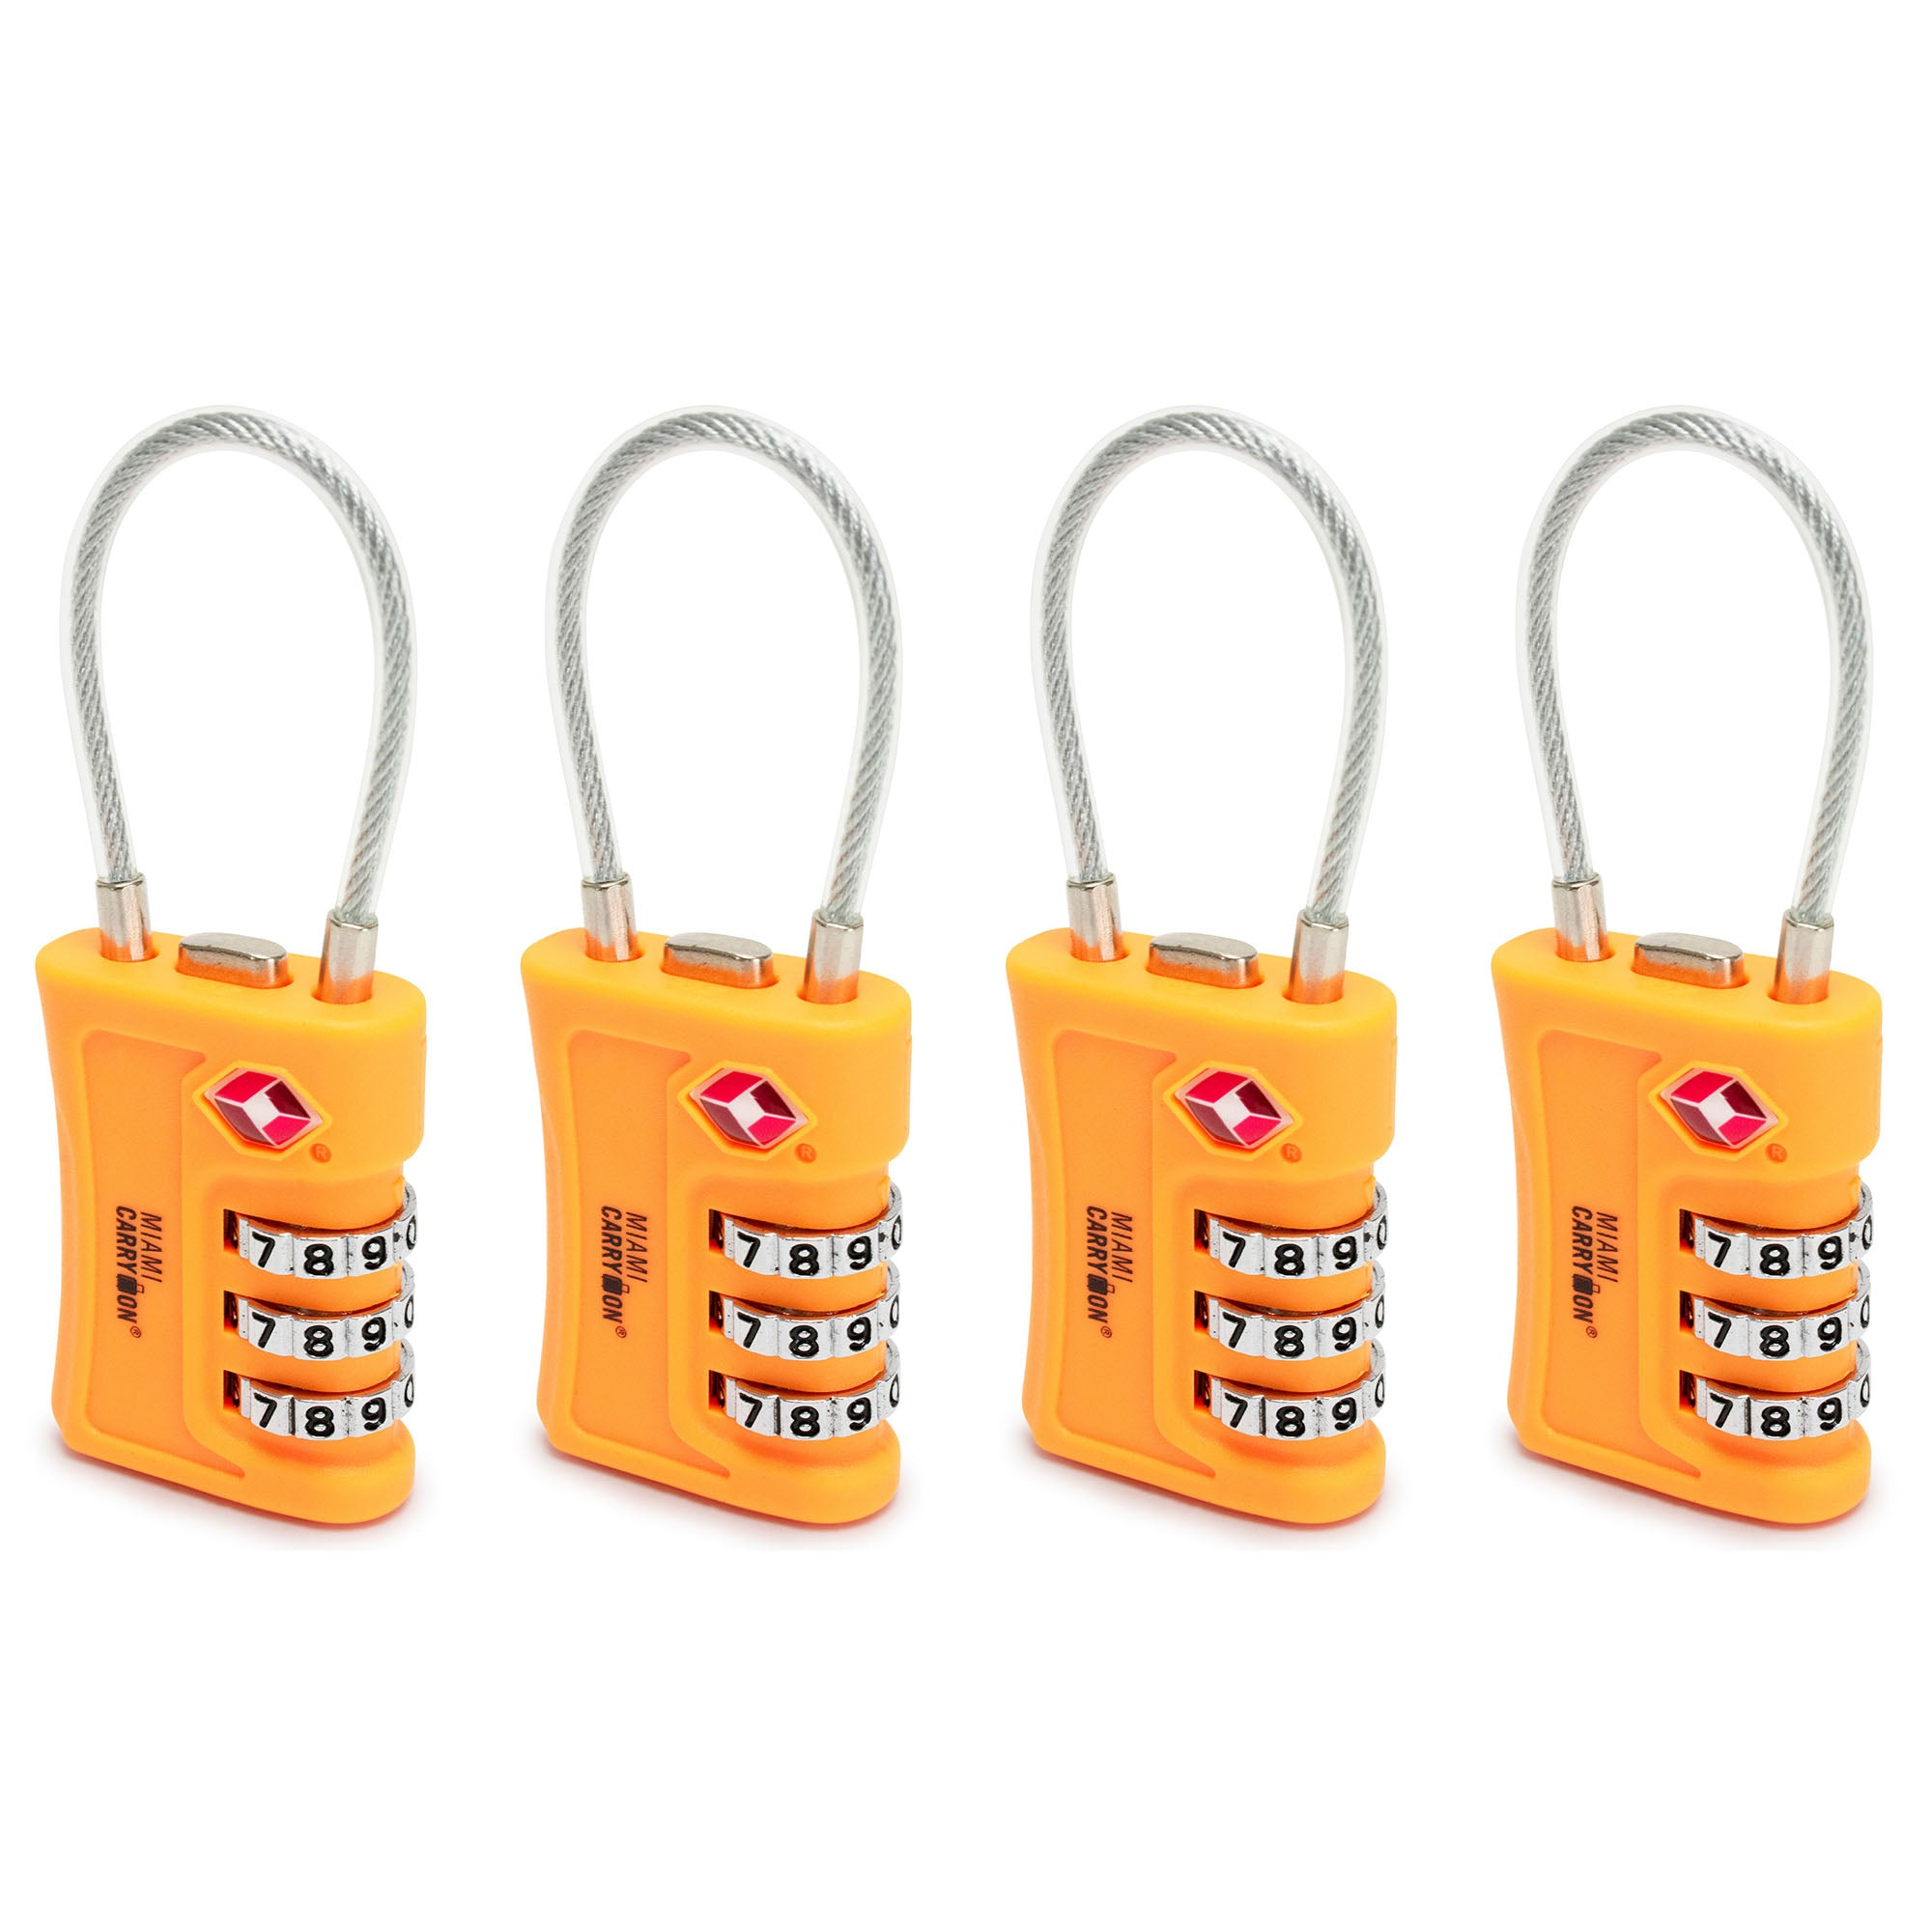 TSA Approved Cable Combination Padlock [VALUE SET] - Orange / 4 Pack - Travellty